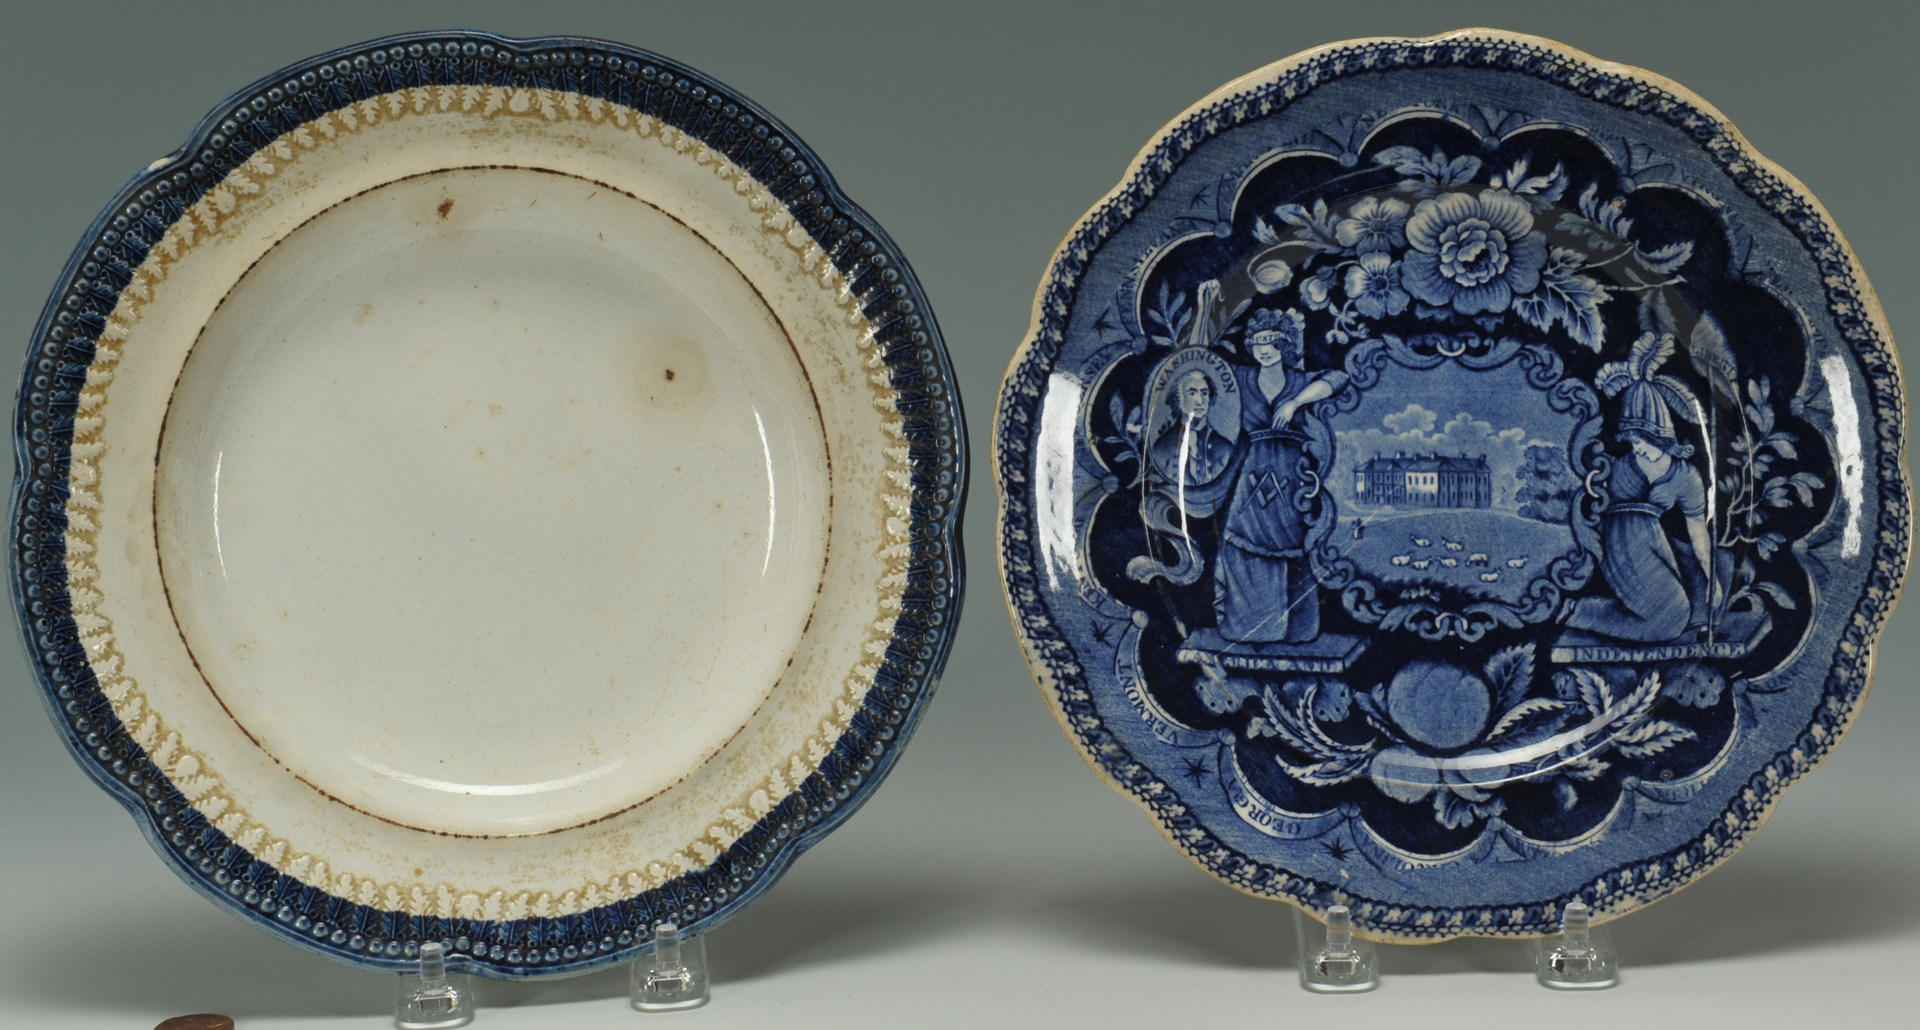 Lot 251: 2 Historical Staffordshire Plates, Clews & Cobridg